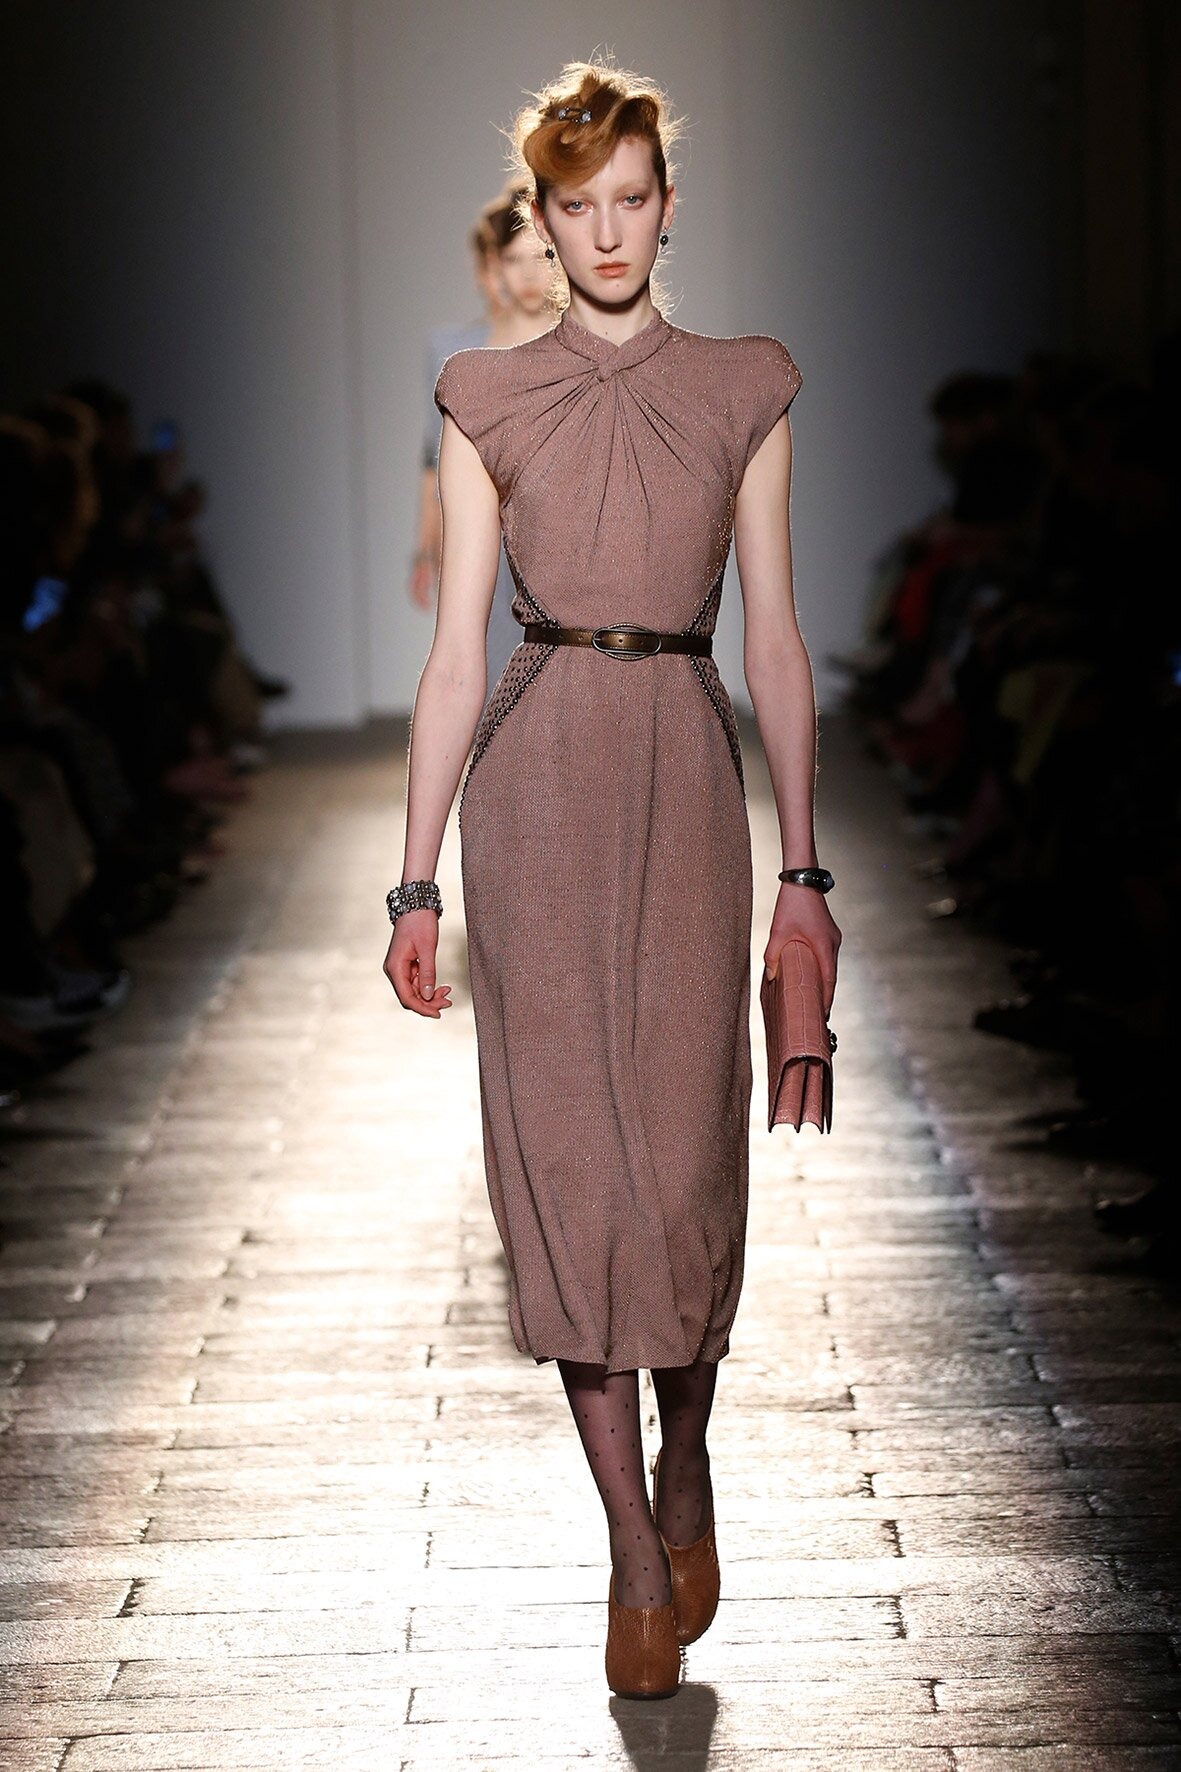 Bottega Veneta Catwalk